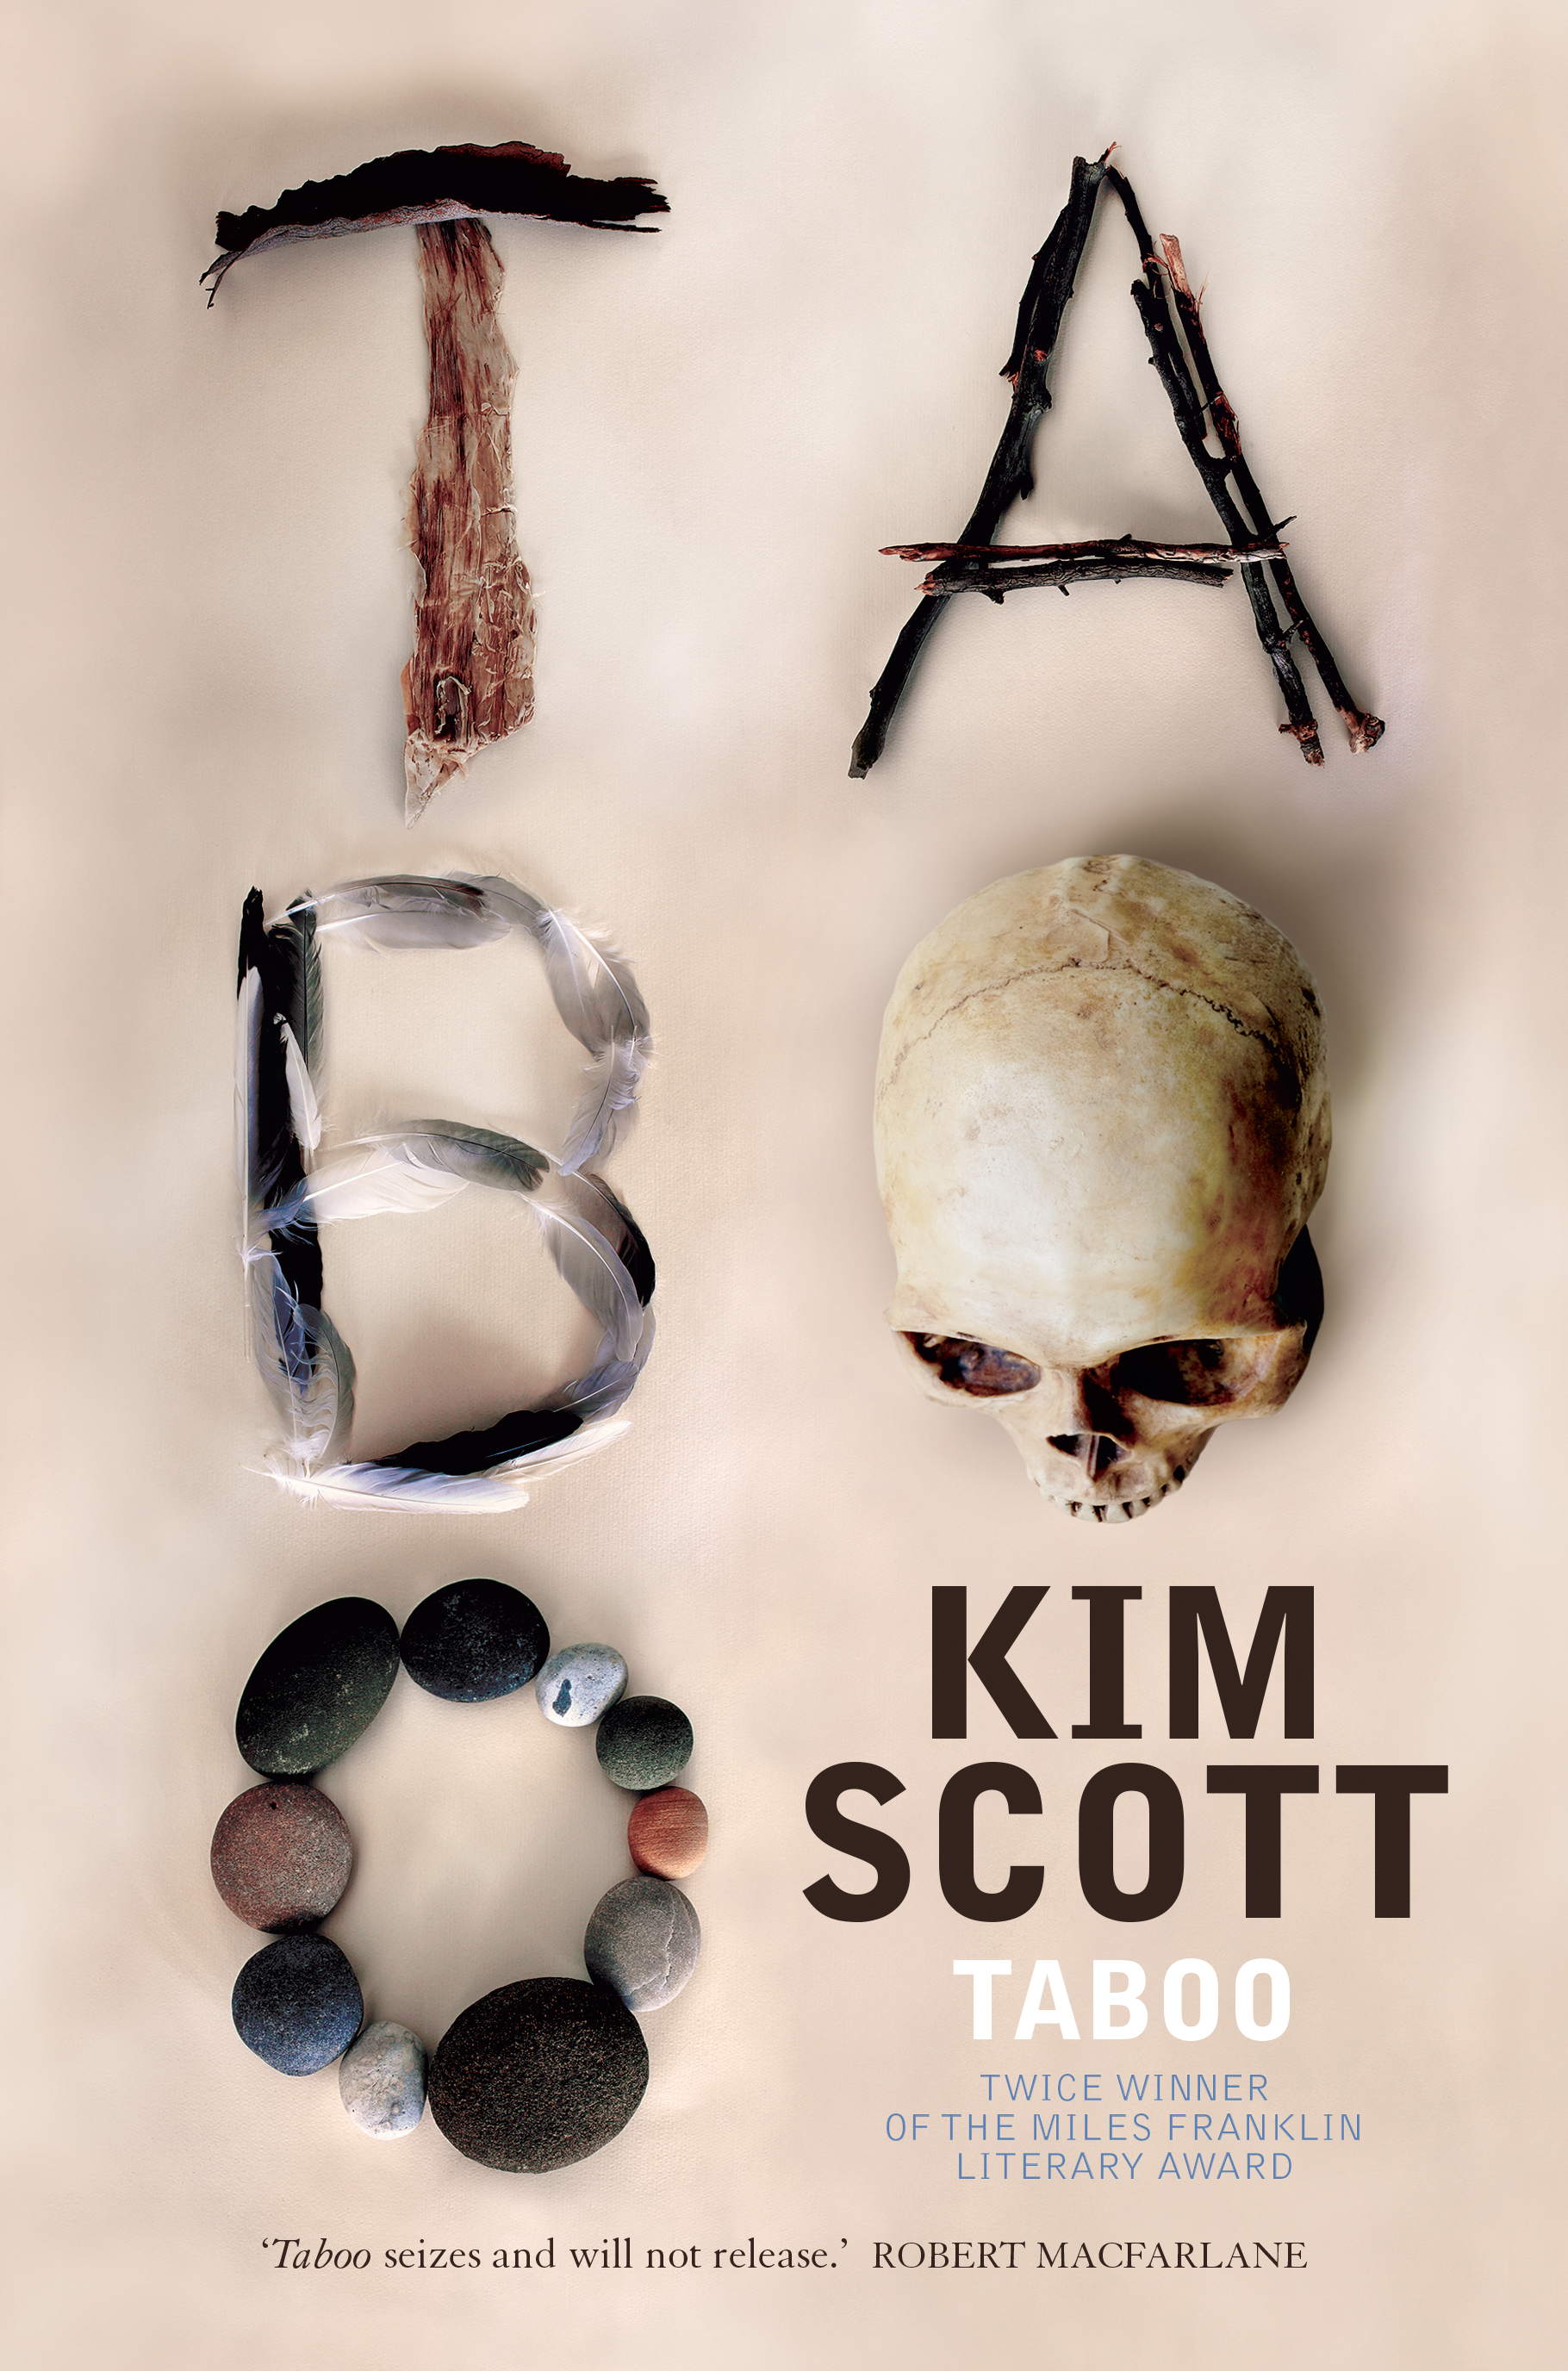 Cover image of the book, 'Taboo', by Kim Scott